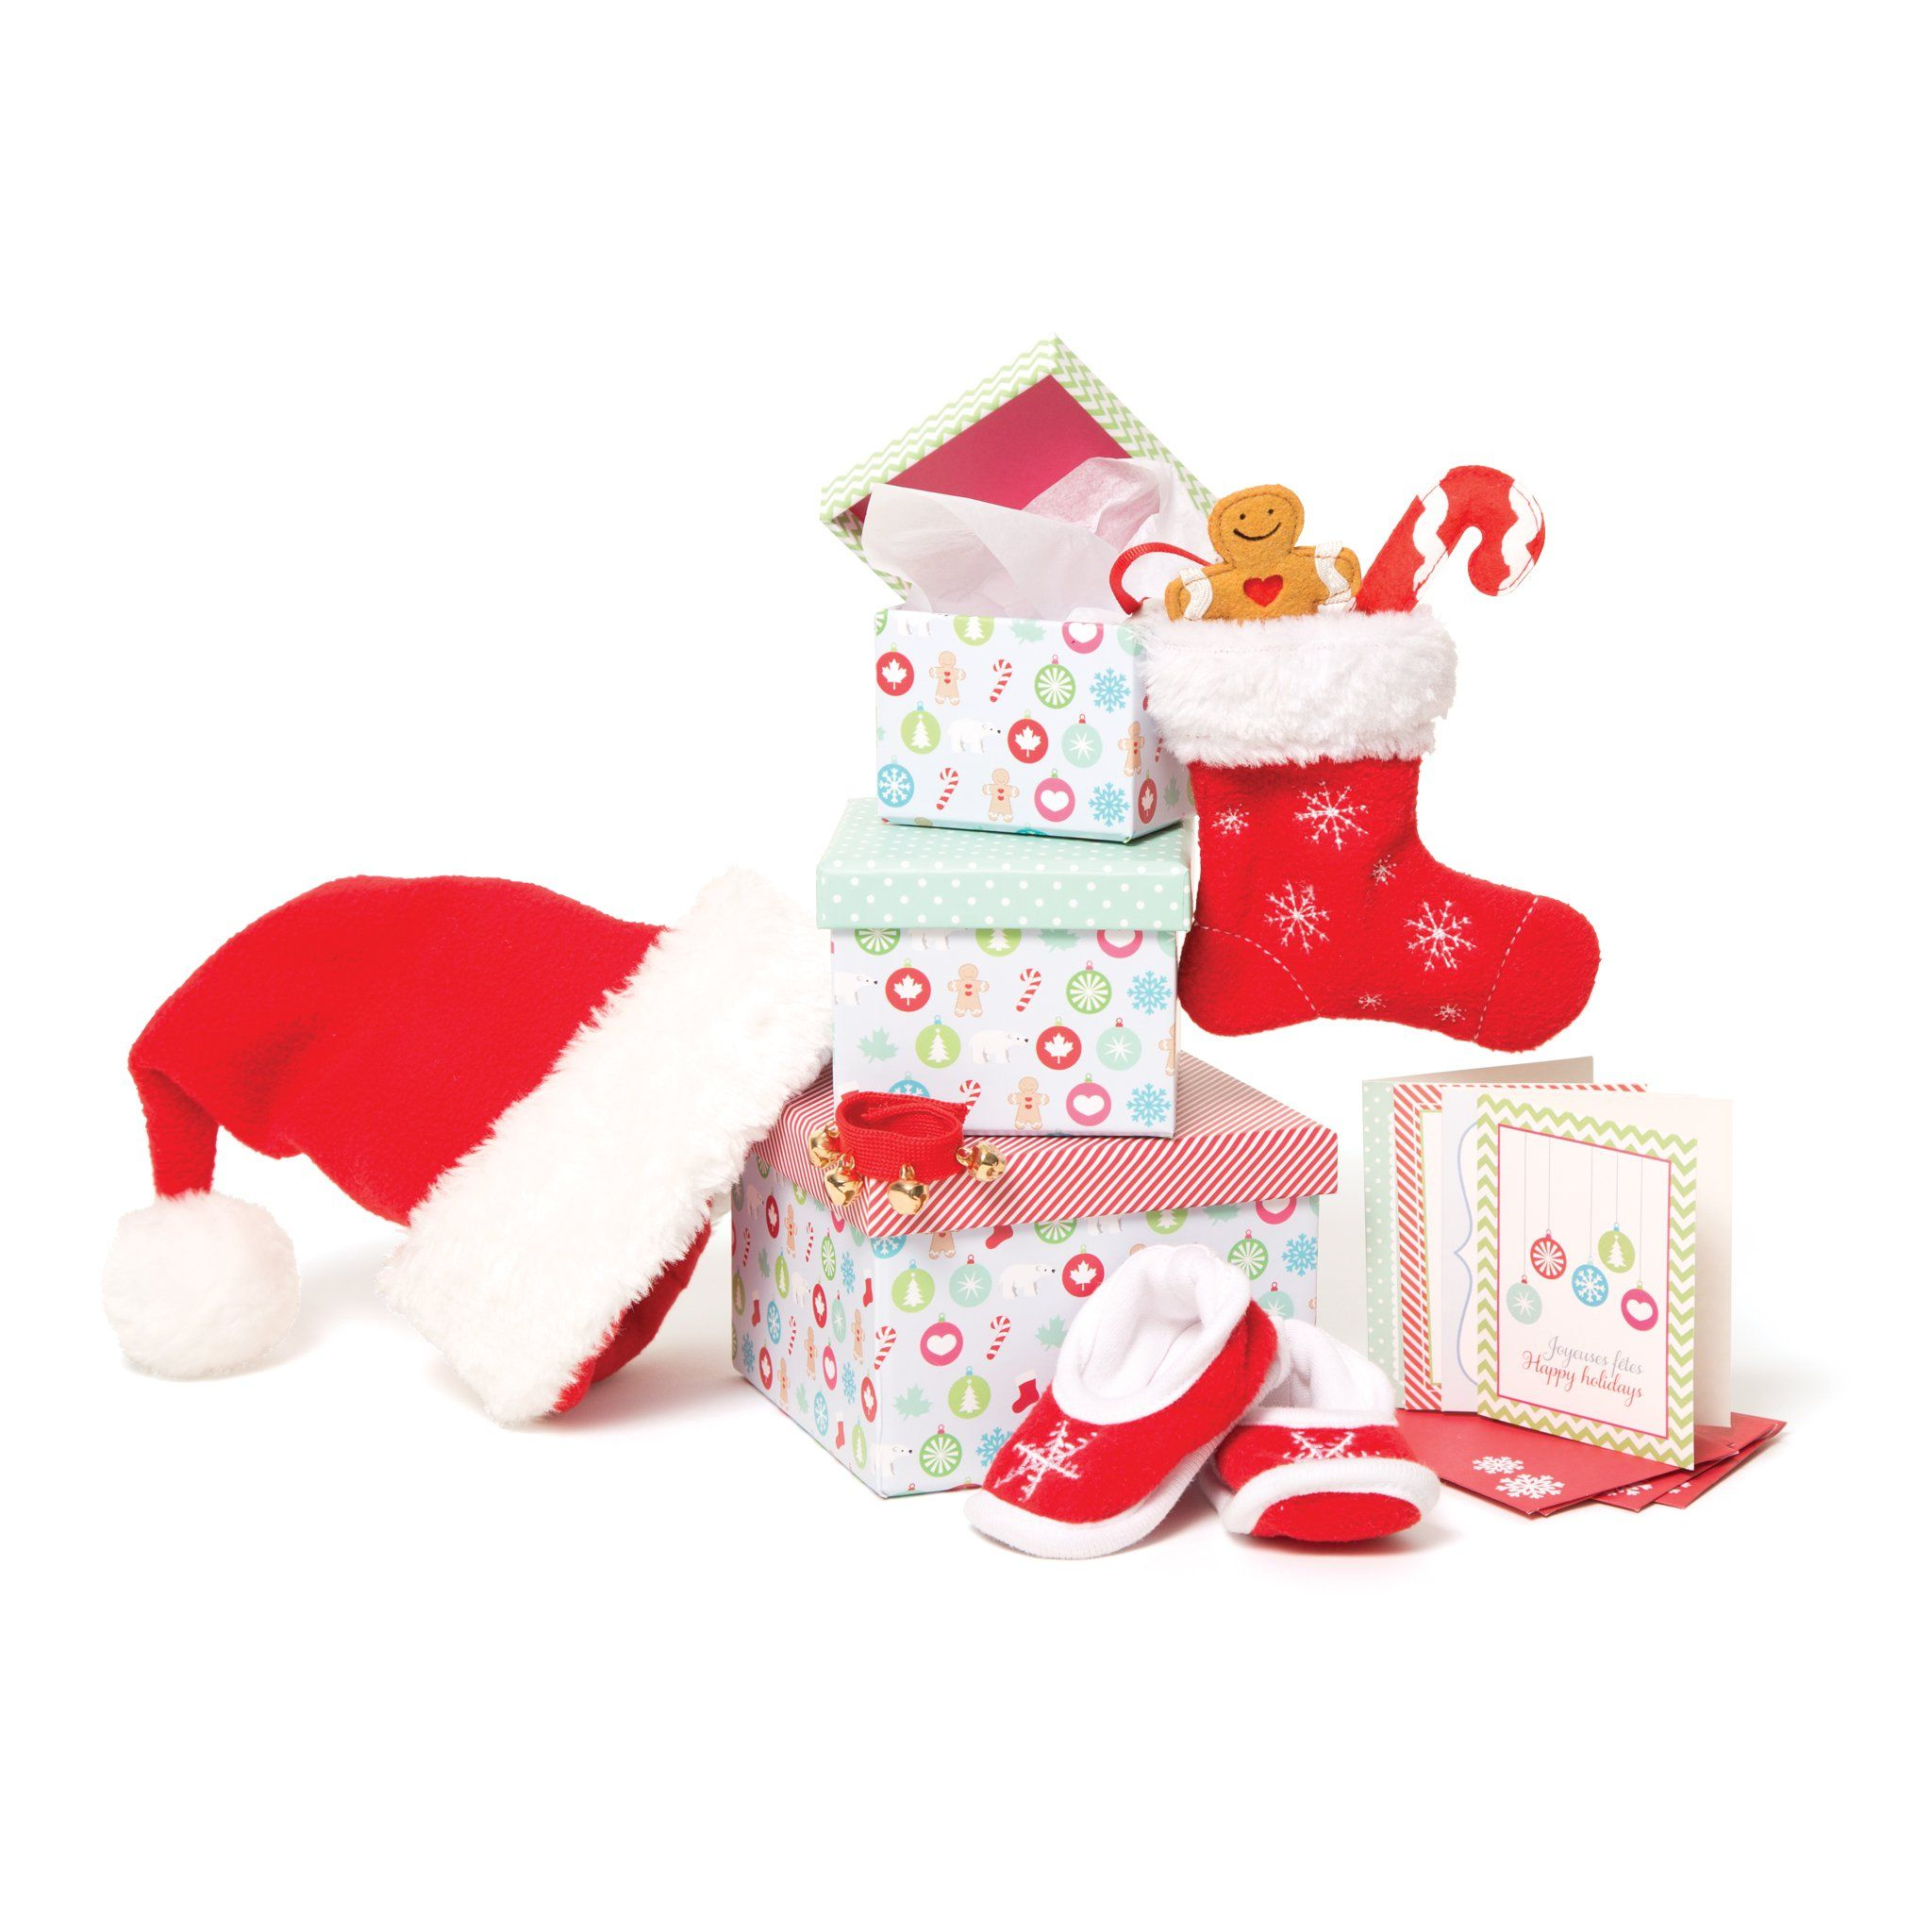 Christmas stocking, Santa hat, gift boxes, slippers and other Christmas accessories for 18 inch doll